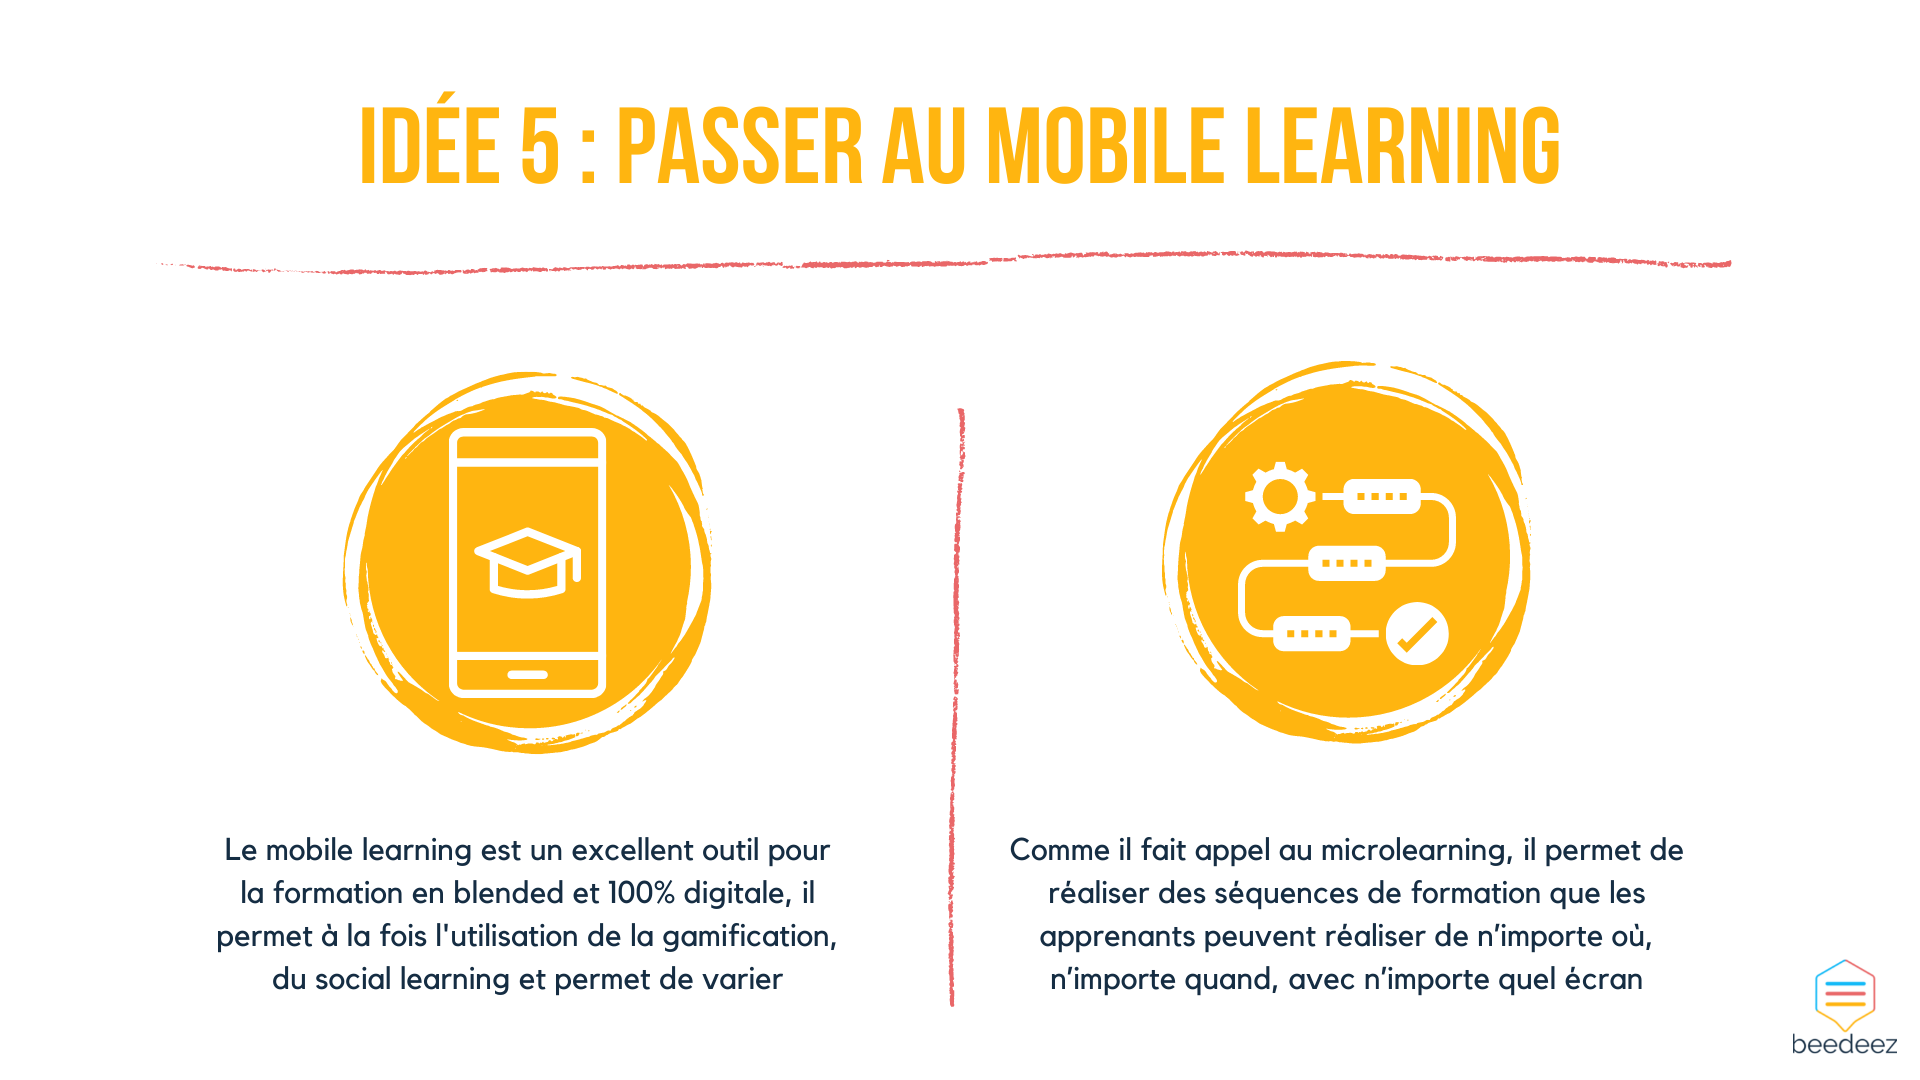 Passer au mobile learning